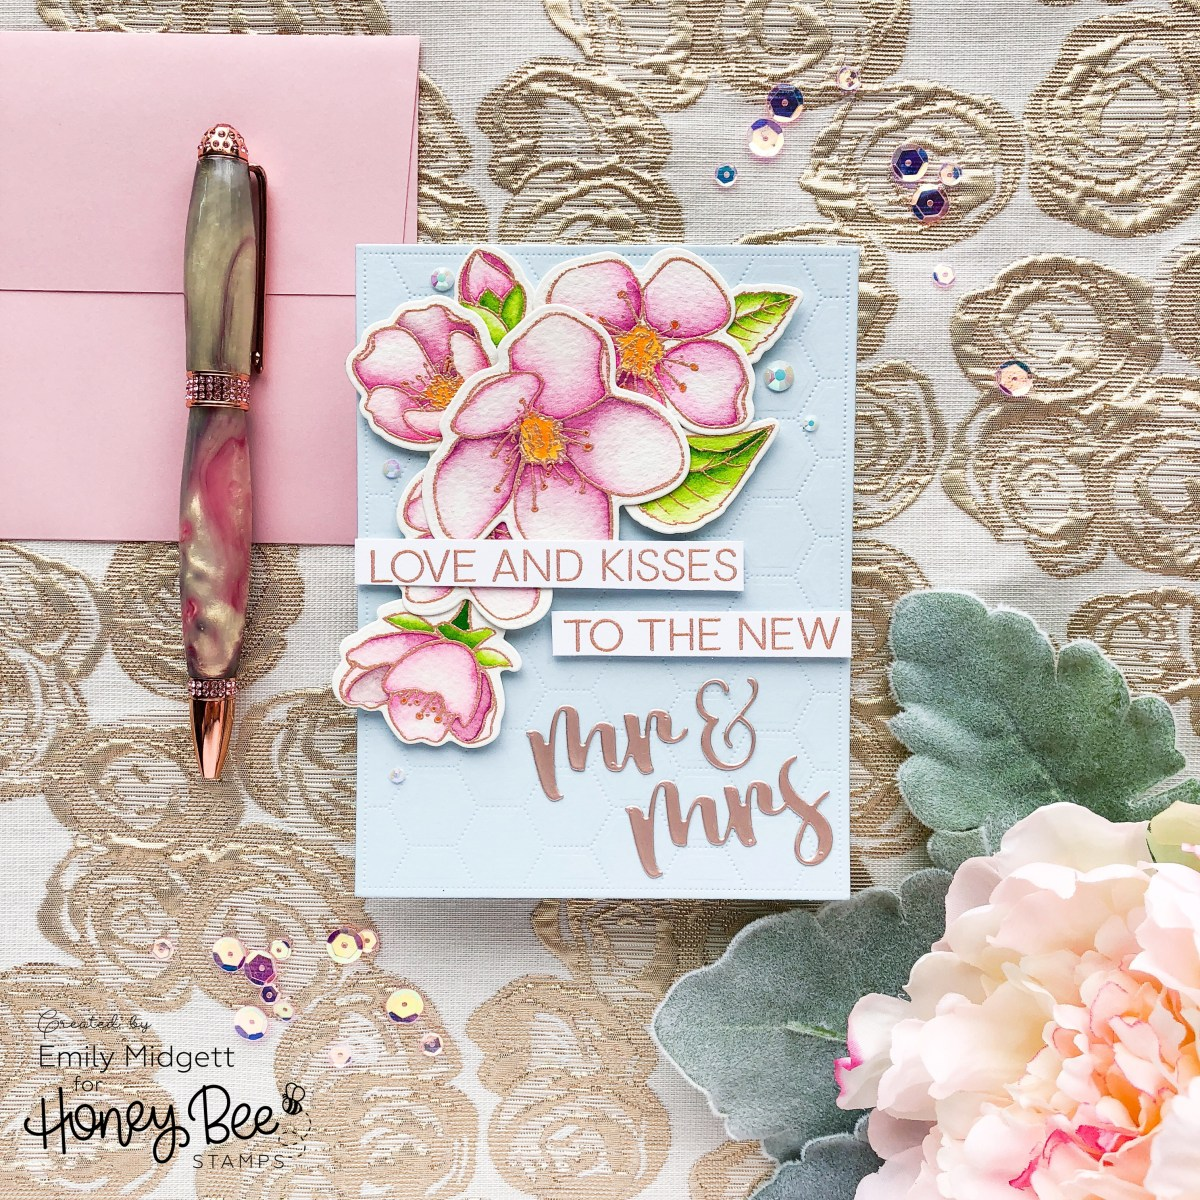 Honey Bee Stamps Birthday Release: Day 1!